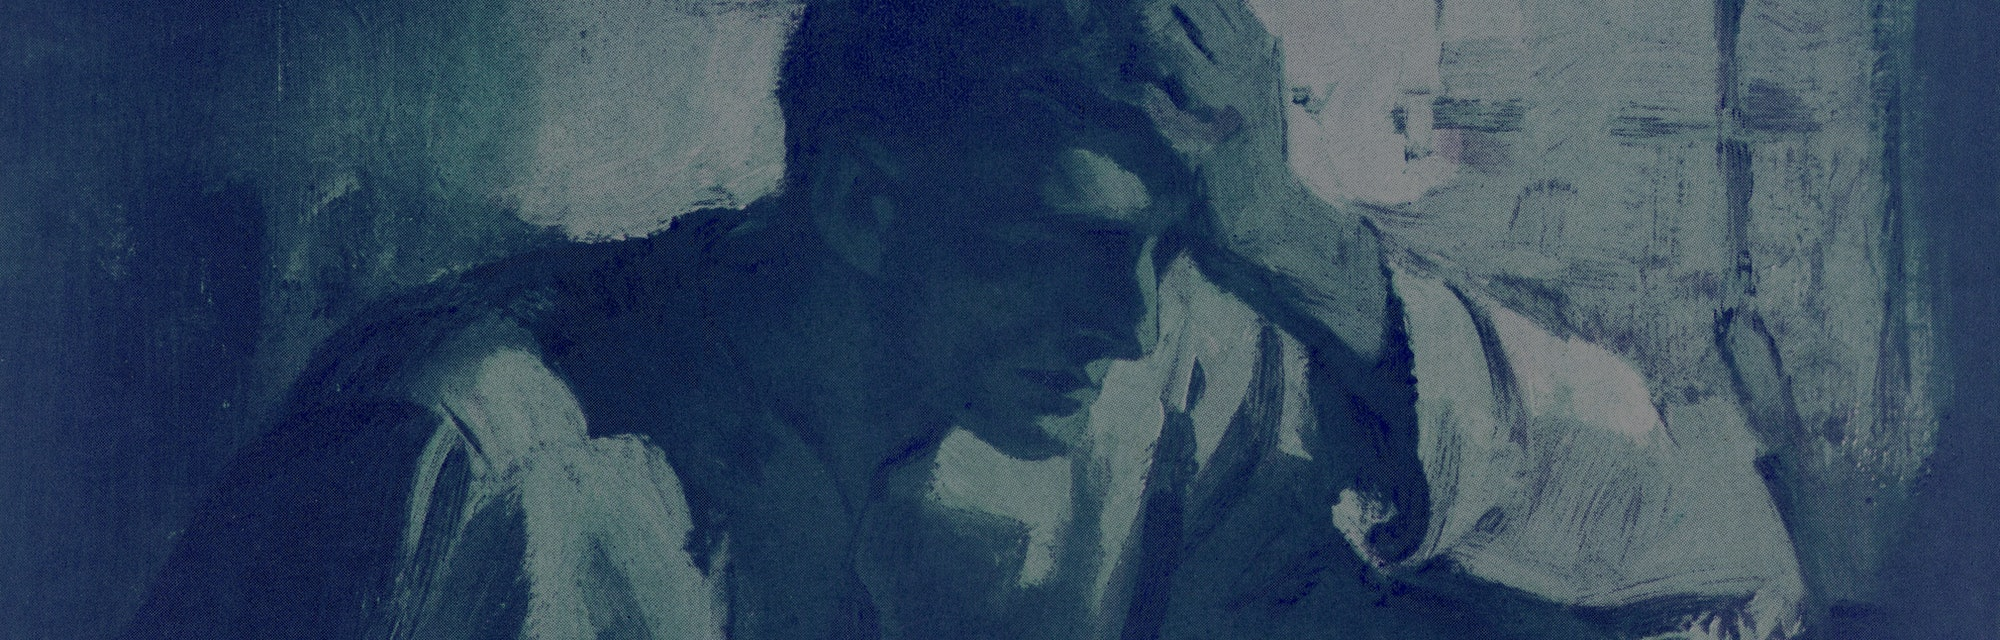 A worried, sleepless man in bed in the middle of the night with his head in his hand, c. 1925. Scree...